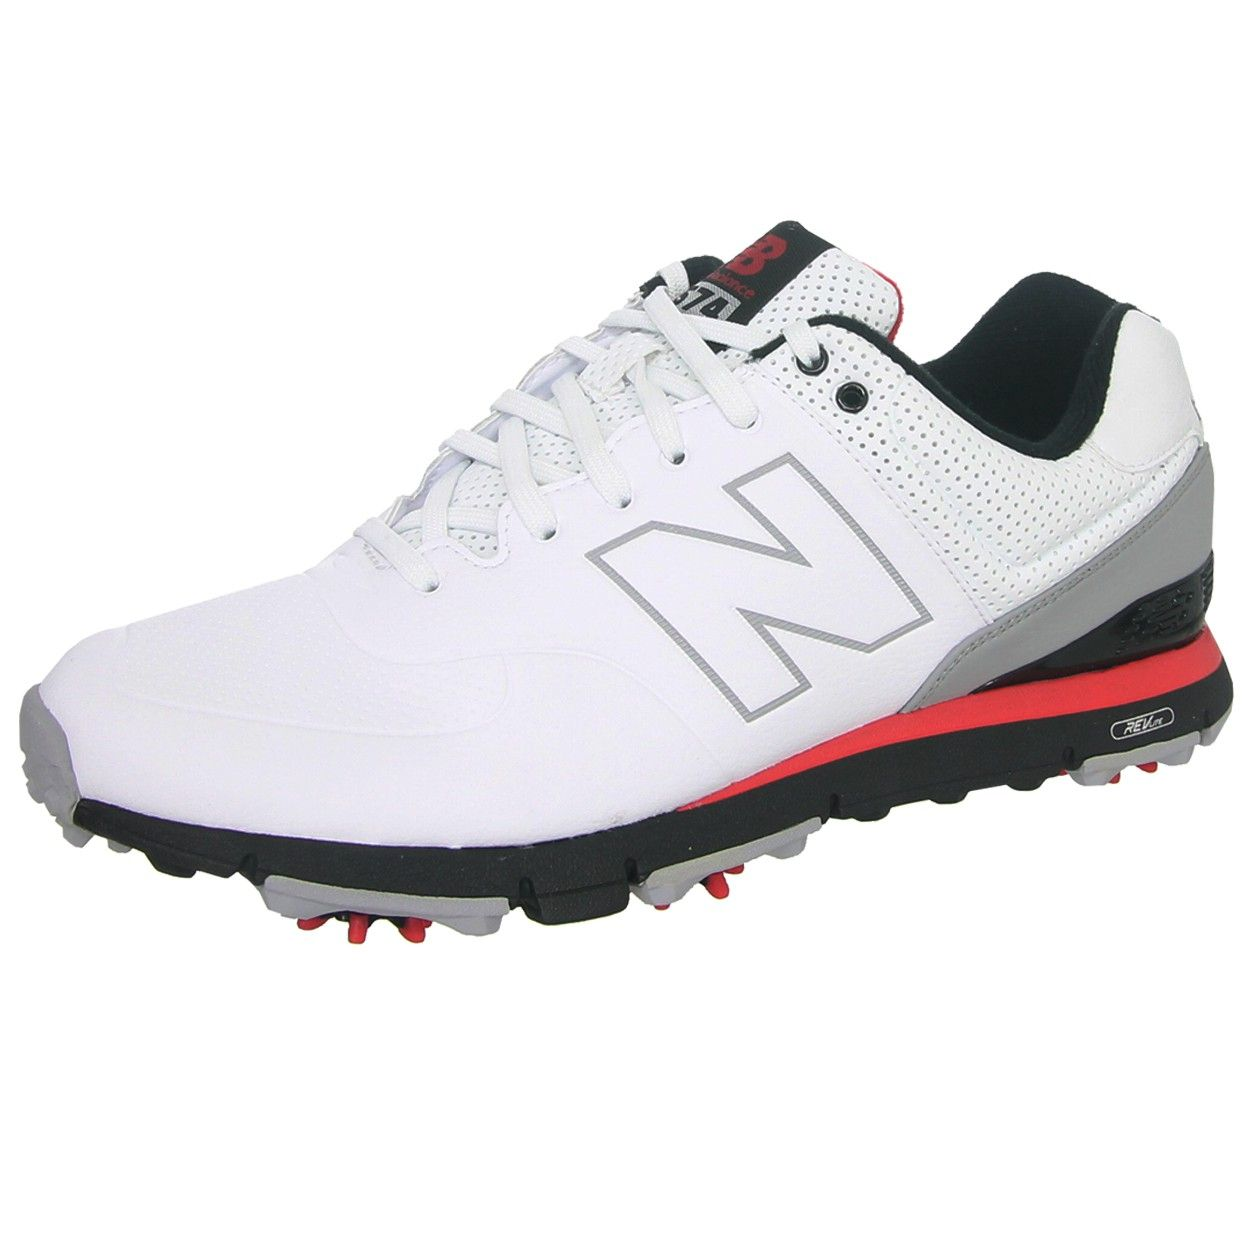 transferencia de dinero Saga director  New Balance NBG574 Men's Leather Golf Shoes | Golf shoes mens, Womens golf  shoes, Golf outfit